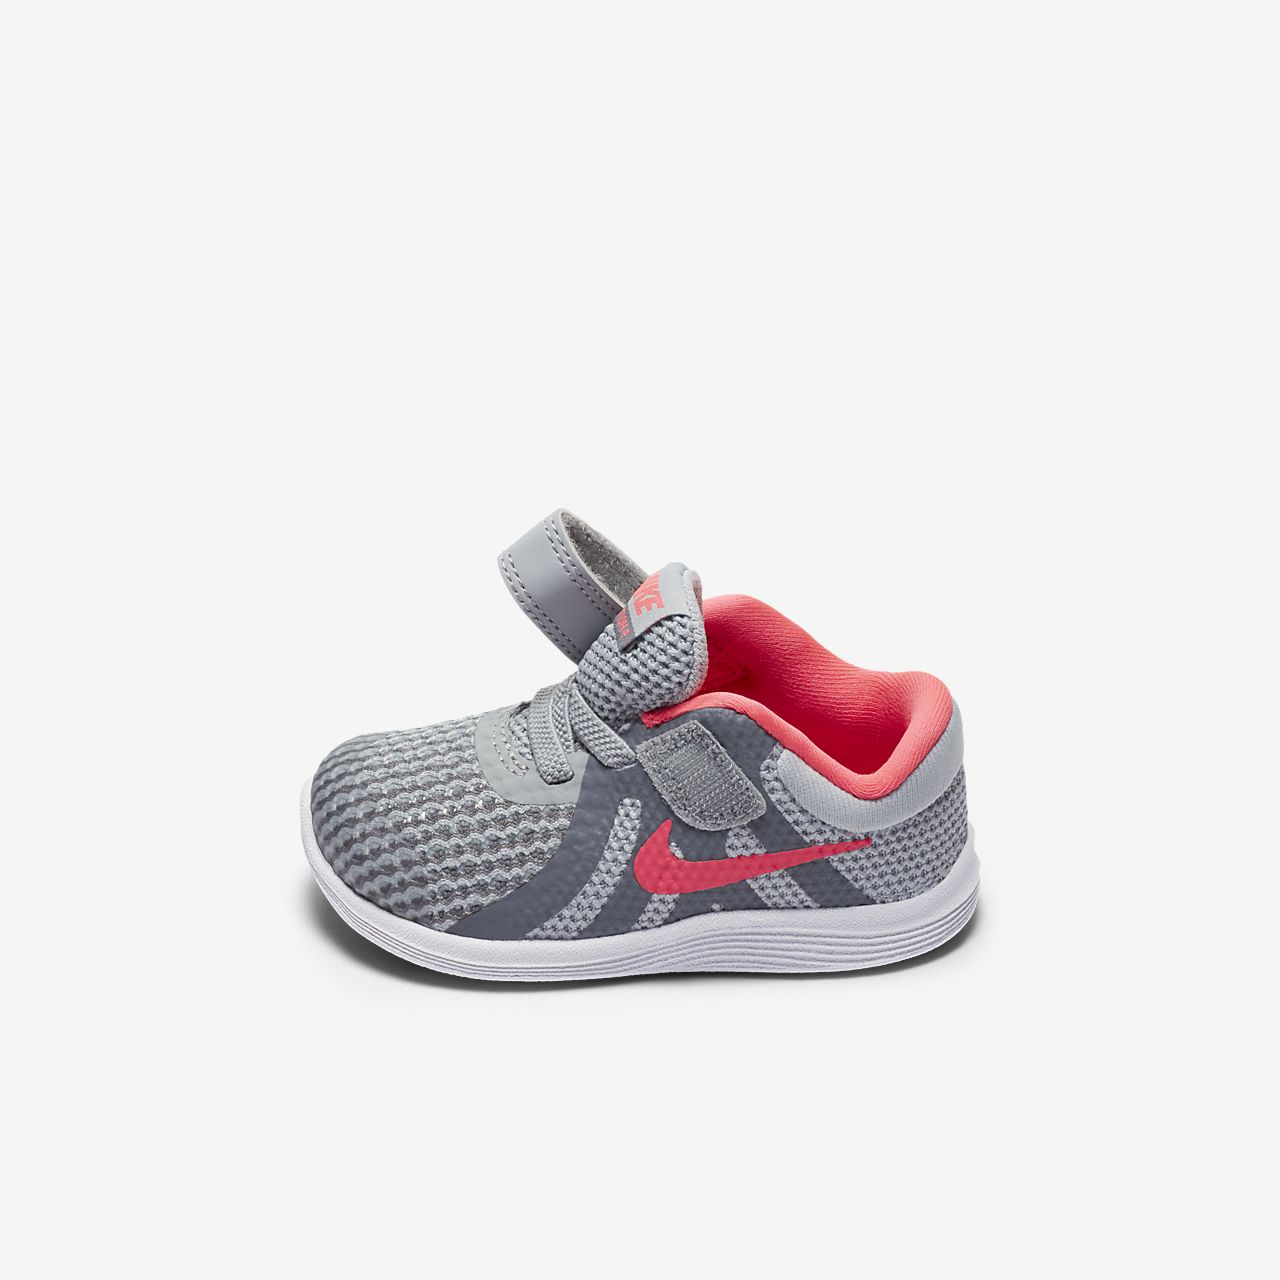 a8d20542c7dad Nike Revolution 4 Infant Toddler Shoe. Nike.com